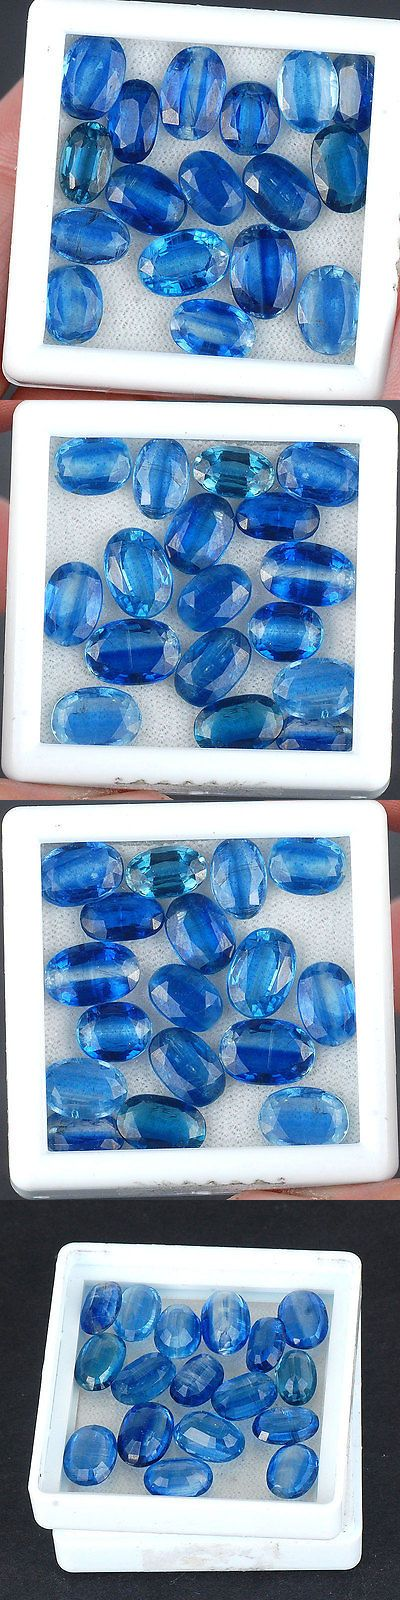 Kyanite 110799: 34 Cts 17 Pcs Untreated Natural Kyanite Wholesale Finest Blue Oval Cut Gemstones -> BUY IT NOW ONLY: $44.99 on eBay!